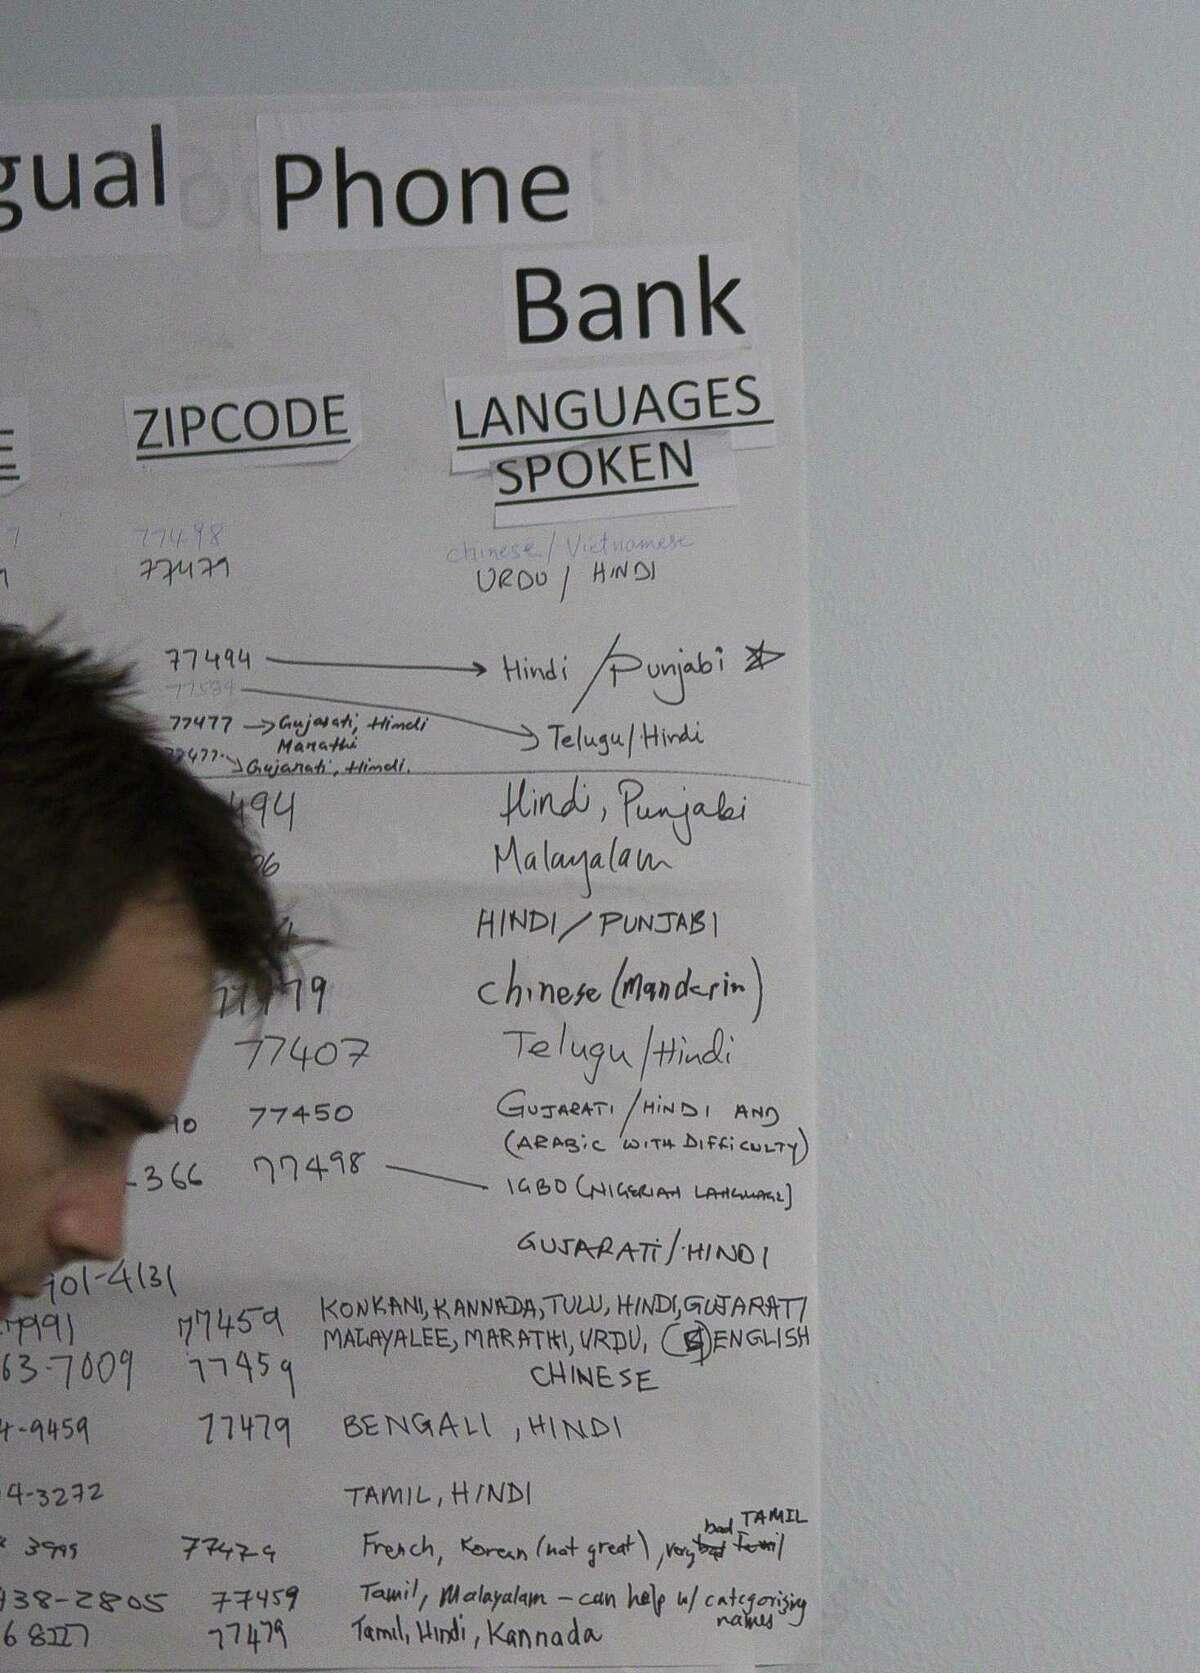 A long list of languages spoken by campaign volunteers hangs in the campaign office of Democrat Sri Preston Kulkarni on Thursday, Aug. 30, 2018 in Sugar Land. Kulkarni's staff has been running phone banking operations with various volunteers who can speak a diverse group of languages from Mandarin Chinese to Tamil to Spanish. The 22nd Congressional District Kulkarni is running in is considered the most diverse in the state and includes Sugar Land and much of the rest of Fort Bend County.